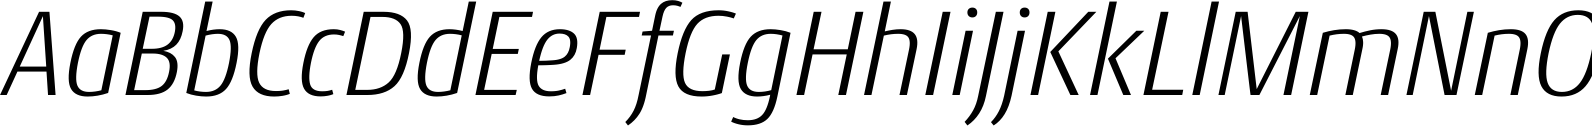 Conto Narrow Light Italic Font